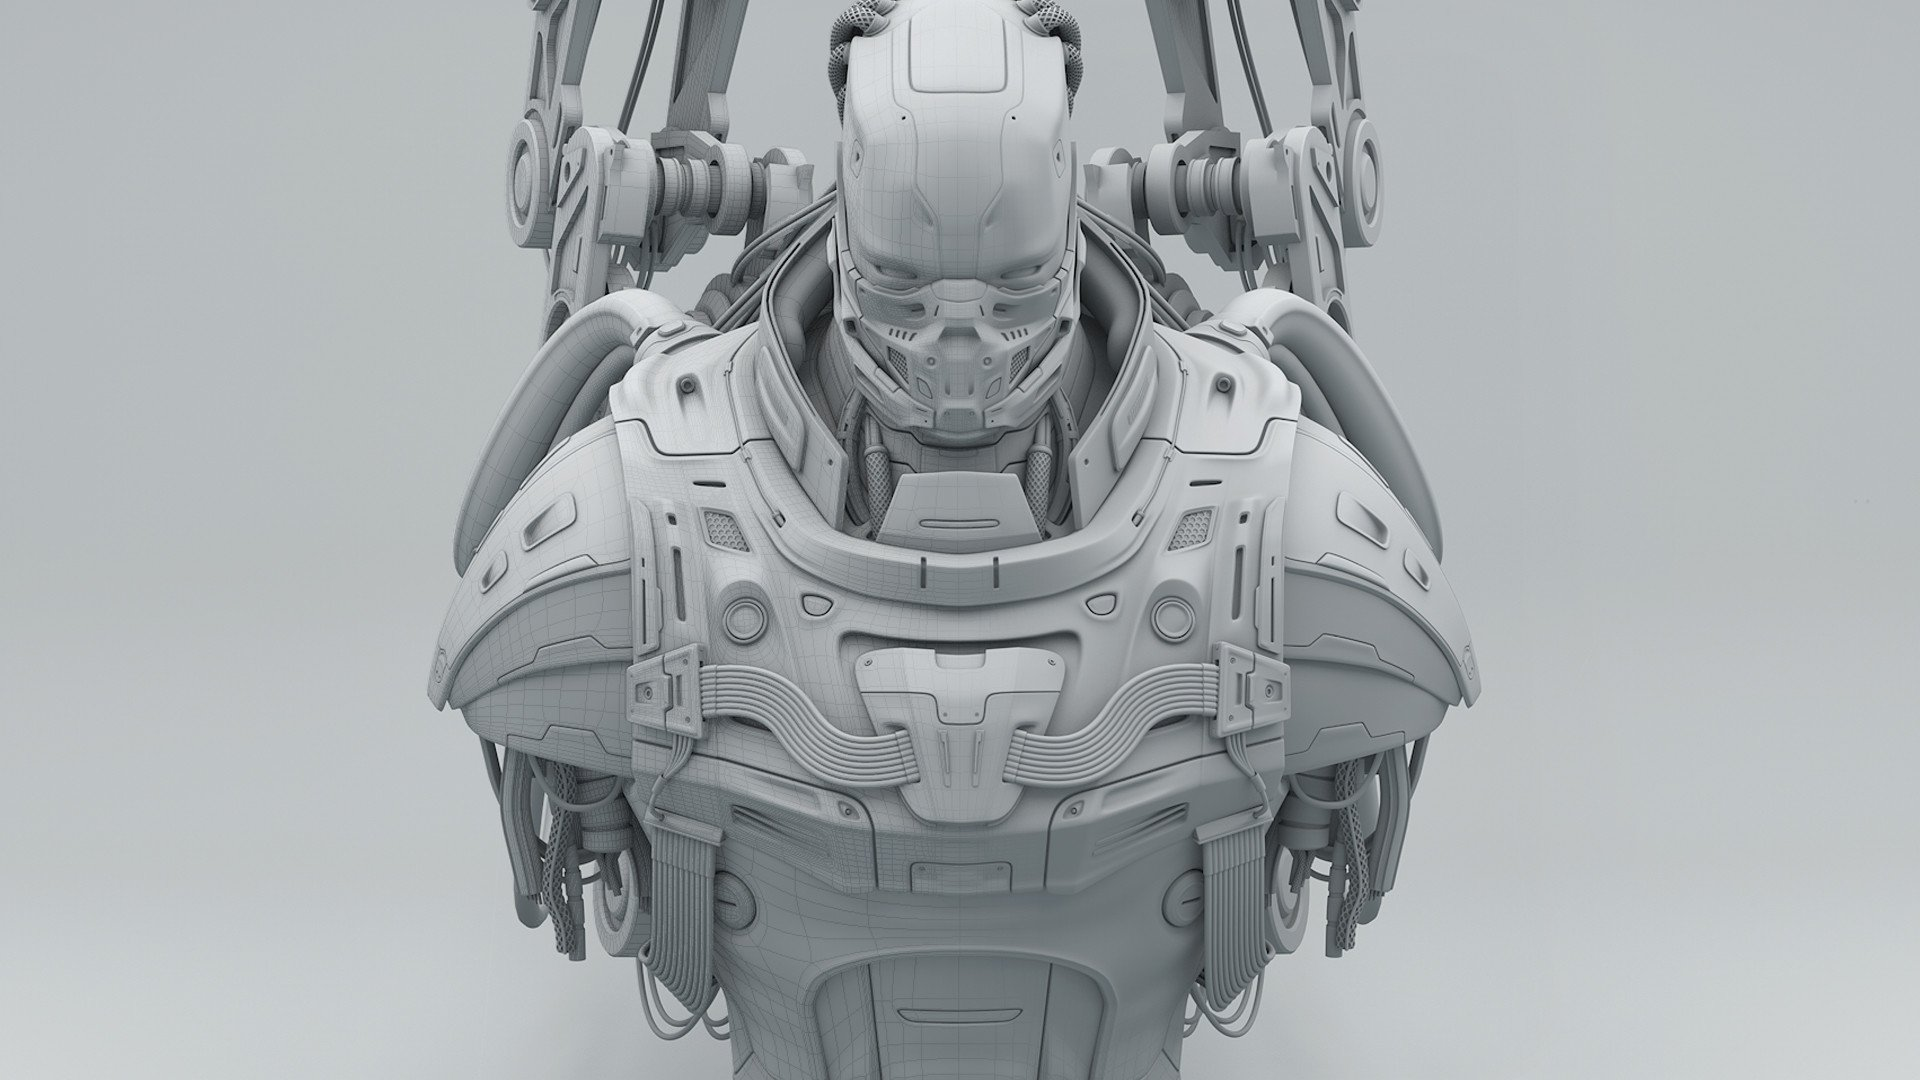 Hard Surface 3D Modeling in C4D - Elementza 3D Art Tutorials and